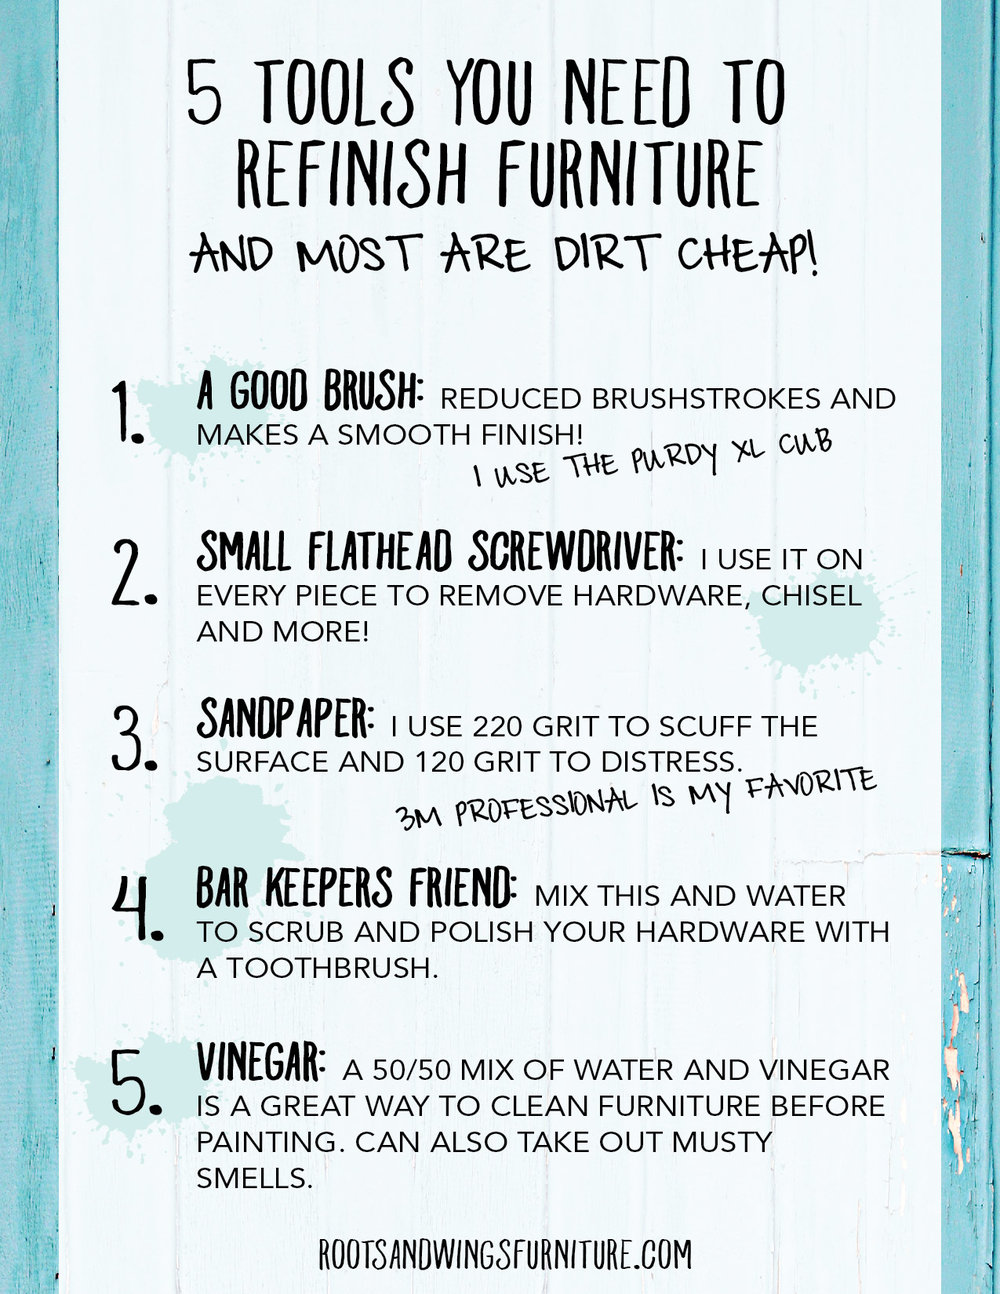 5 tools to refinish furniture